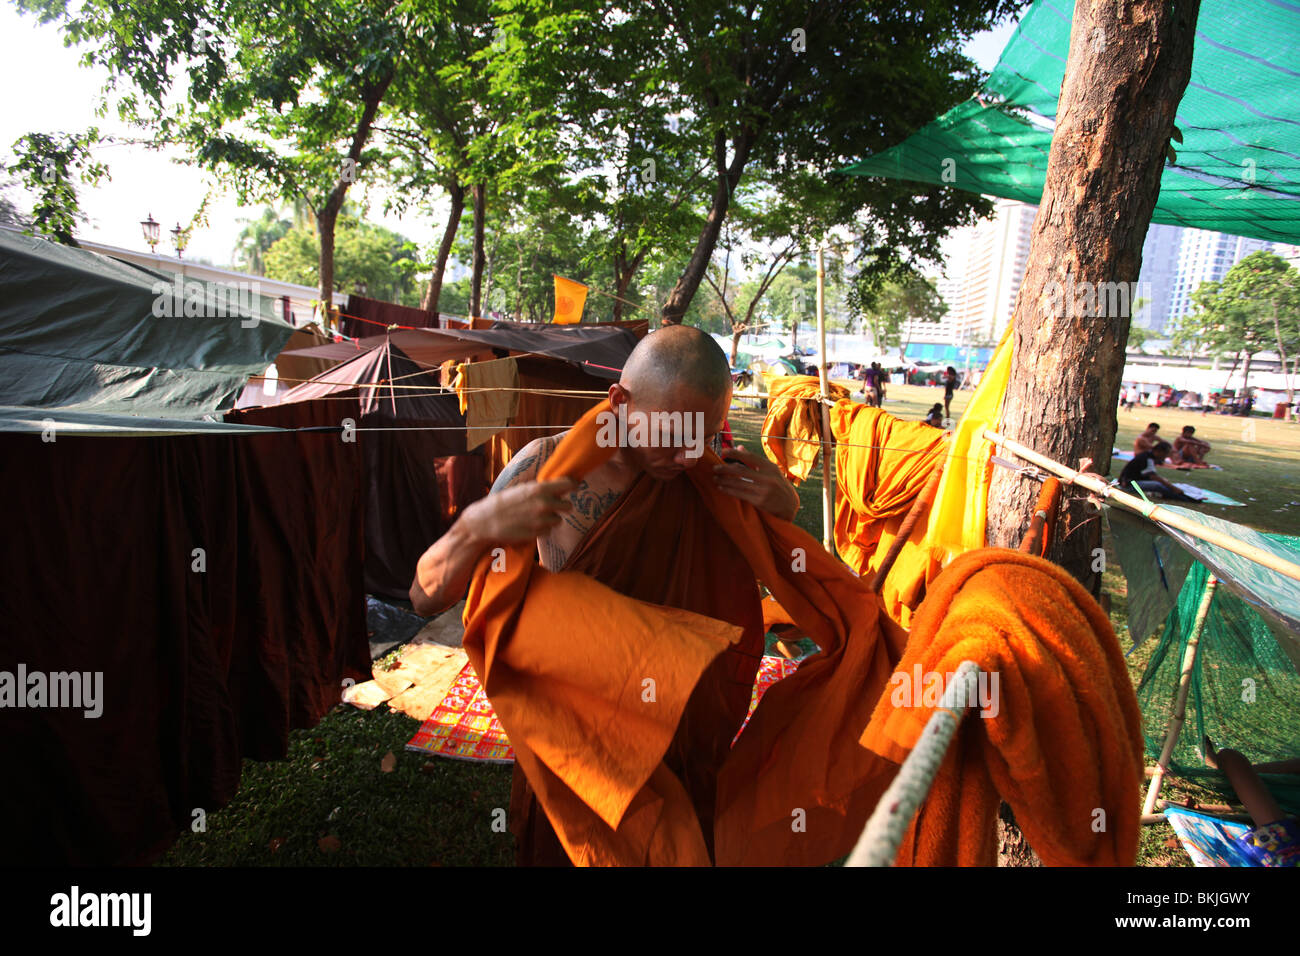 A  Buddhist Monk prepares for another day of protest with Read-Shirt protesters during ongoing political unrest - Stock Image